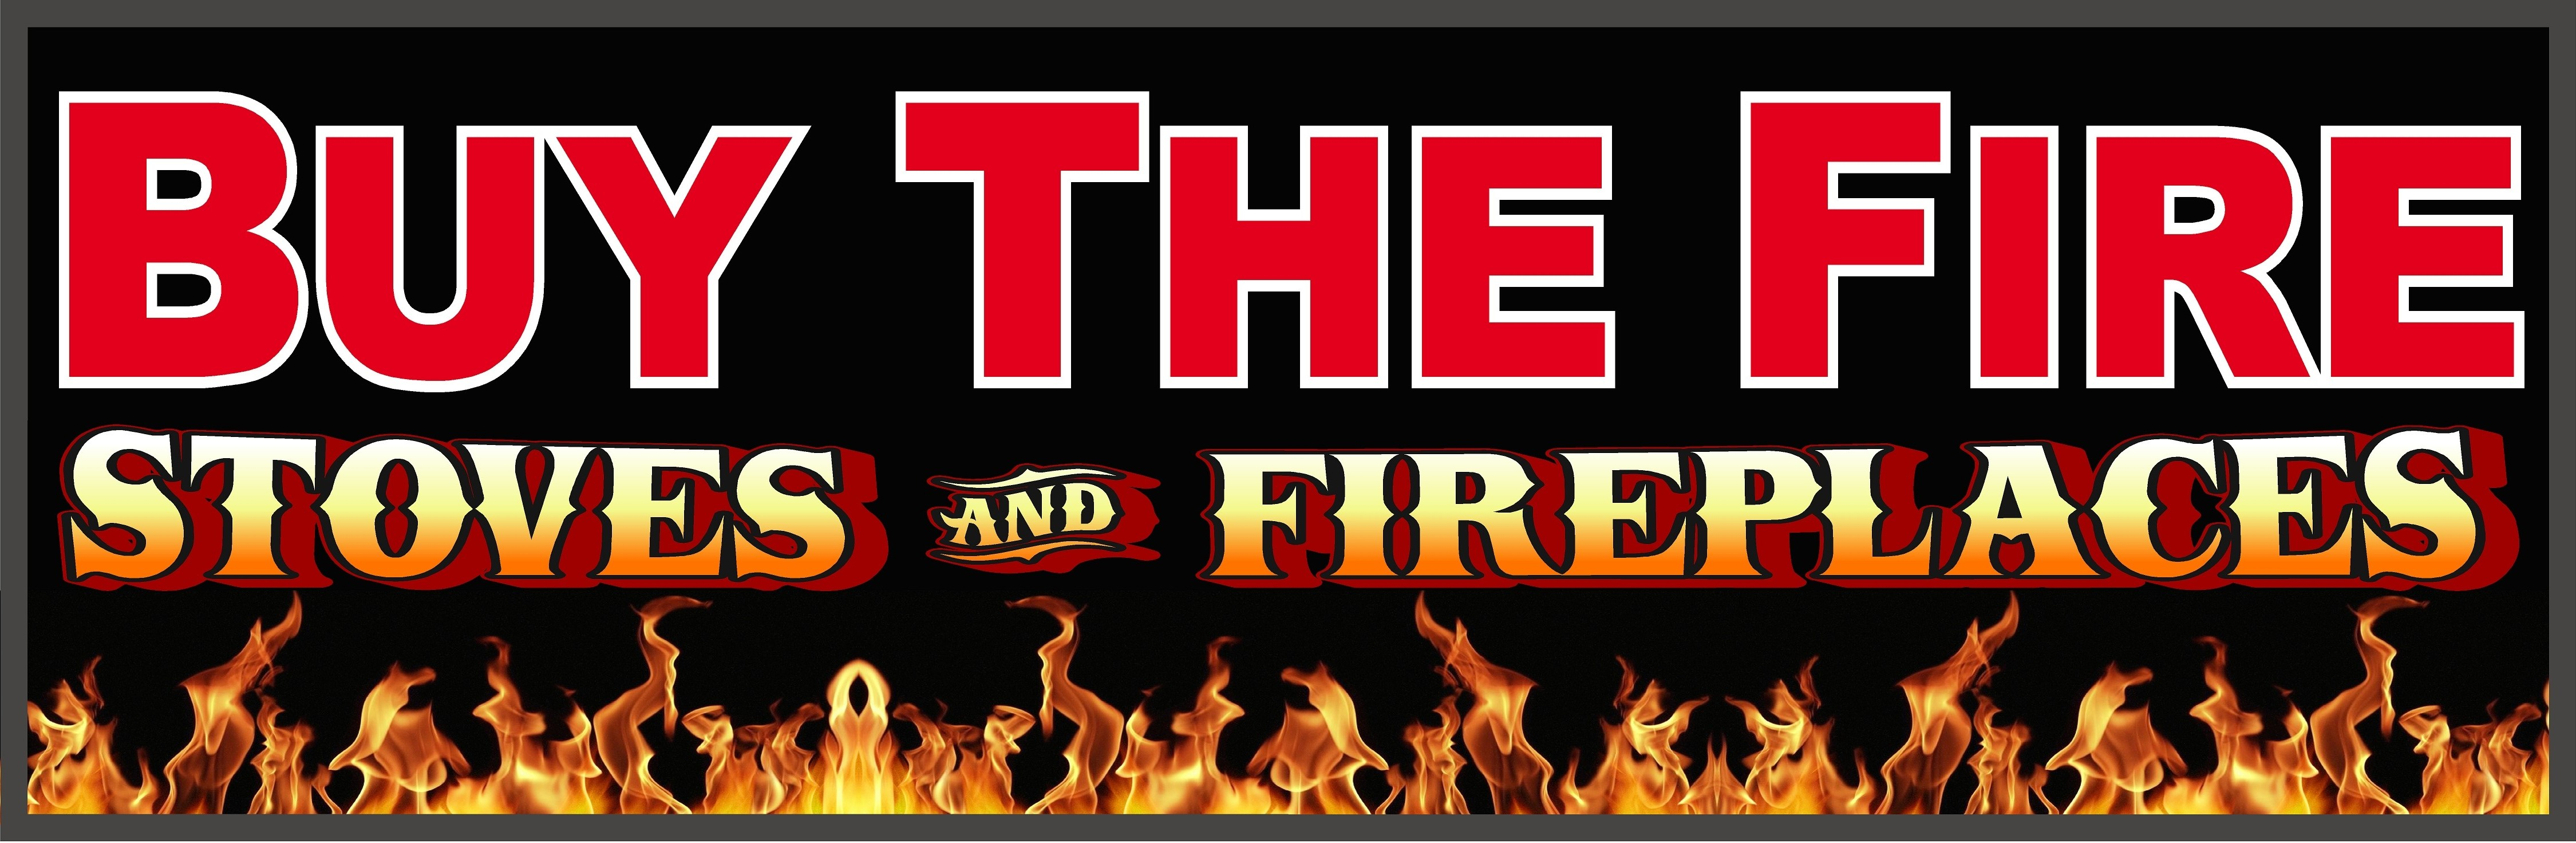 Buy the Fire logo